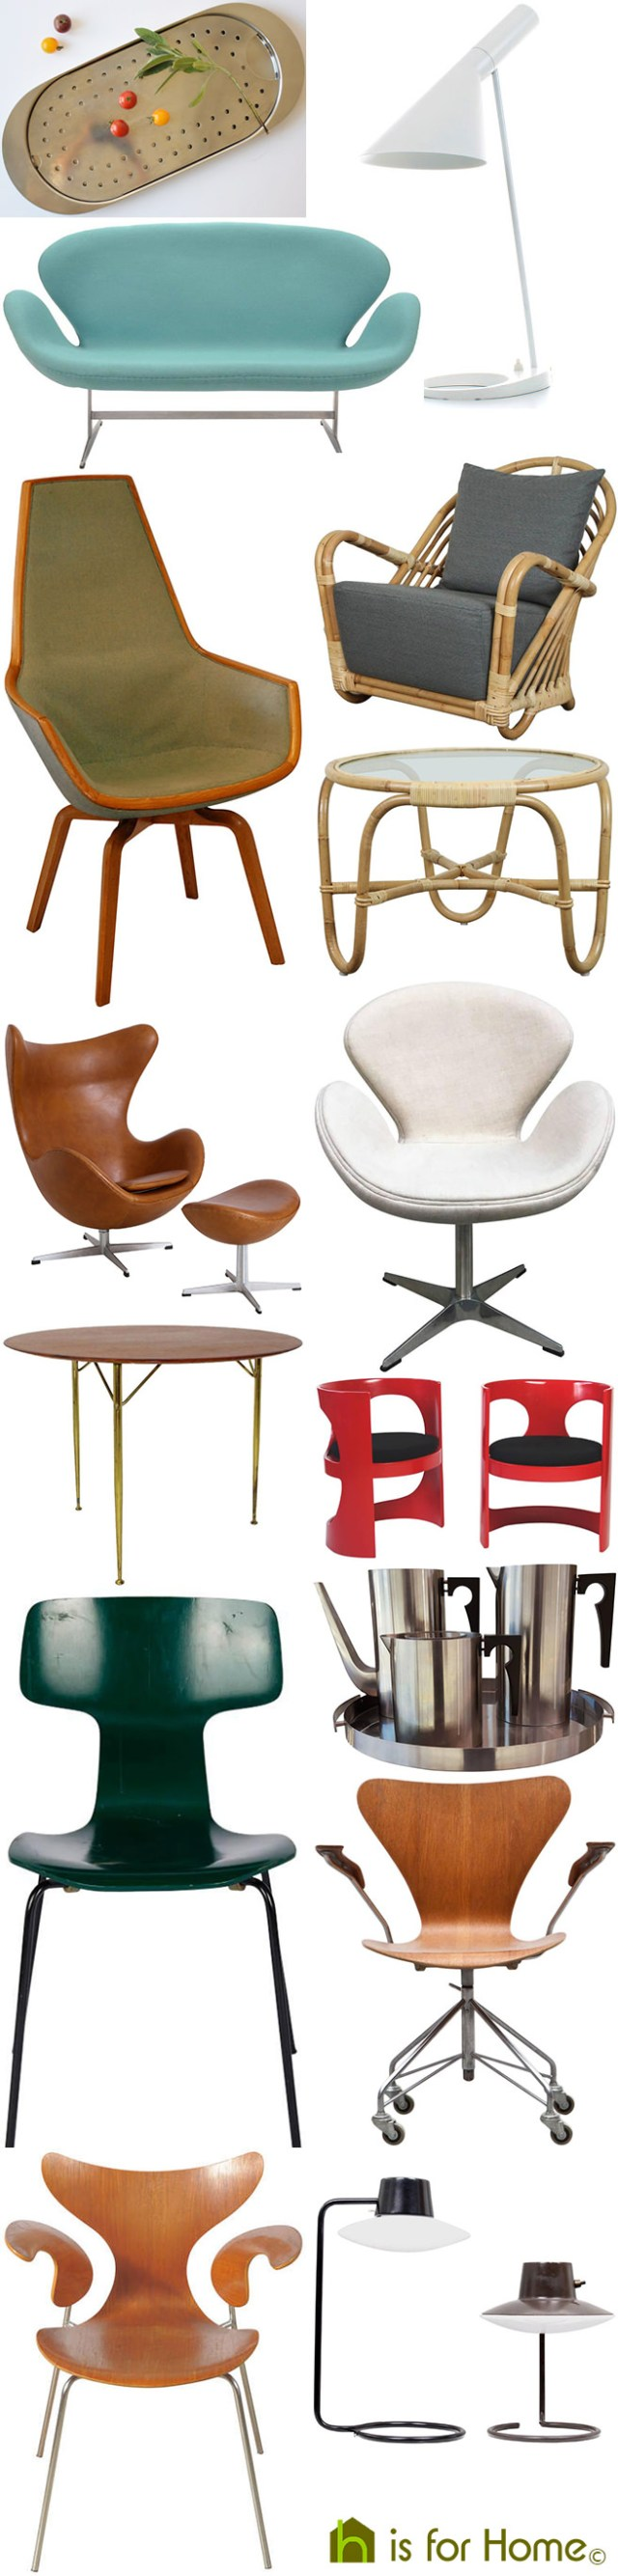 Mosaic of Arne Jacobsen designs | H is for Home